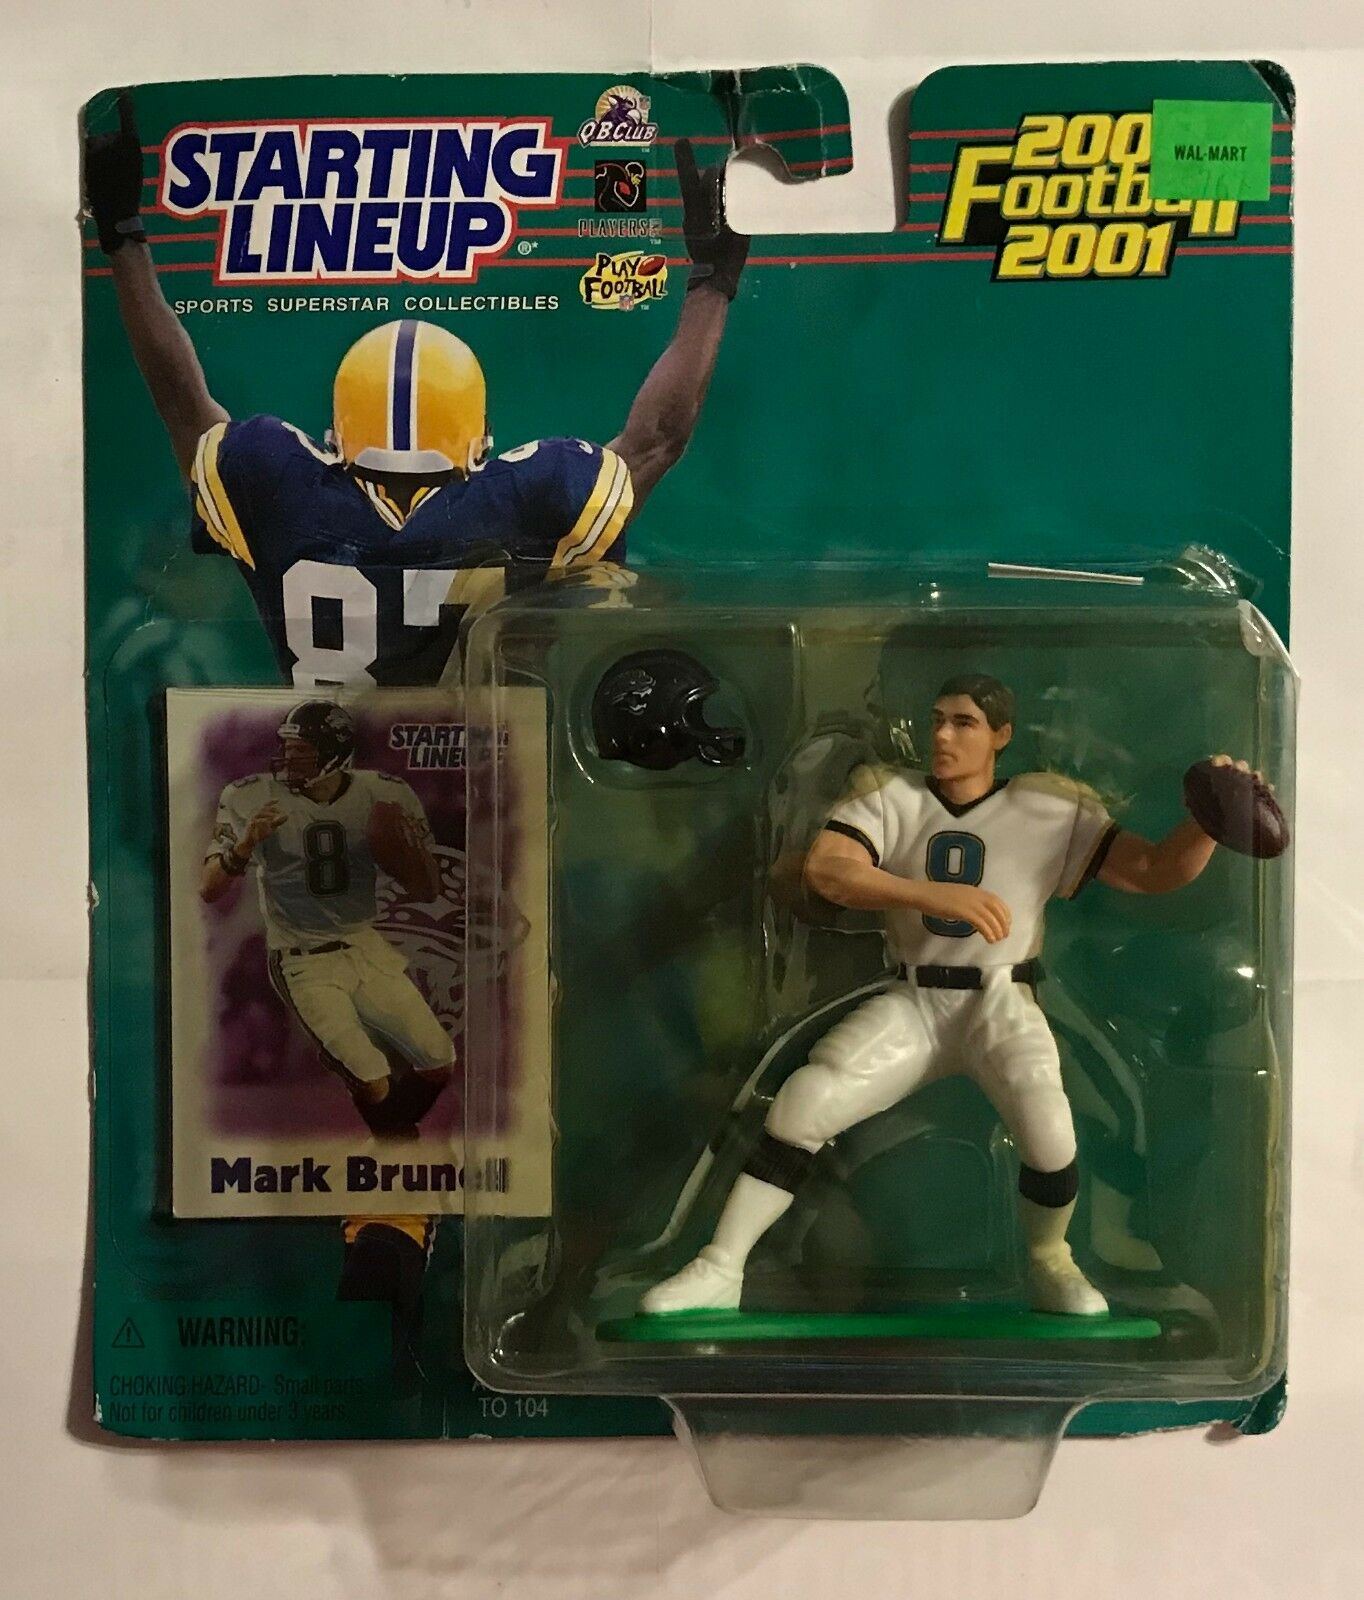 2000 2001 STARTING LINEUP - MARK BRUNELL - ACTION FIGURE